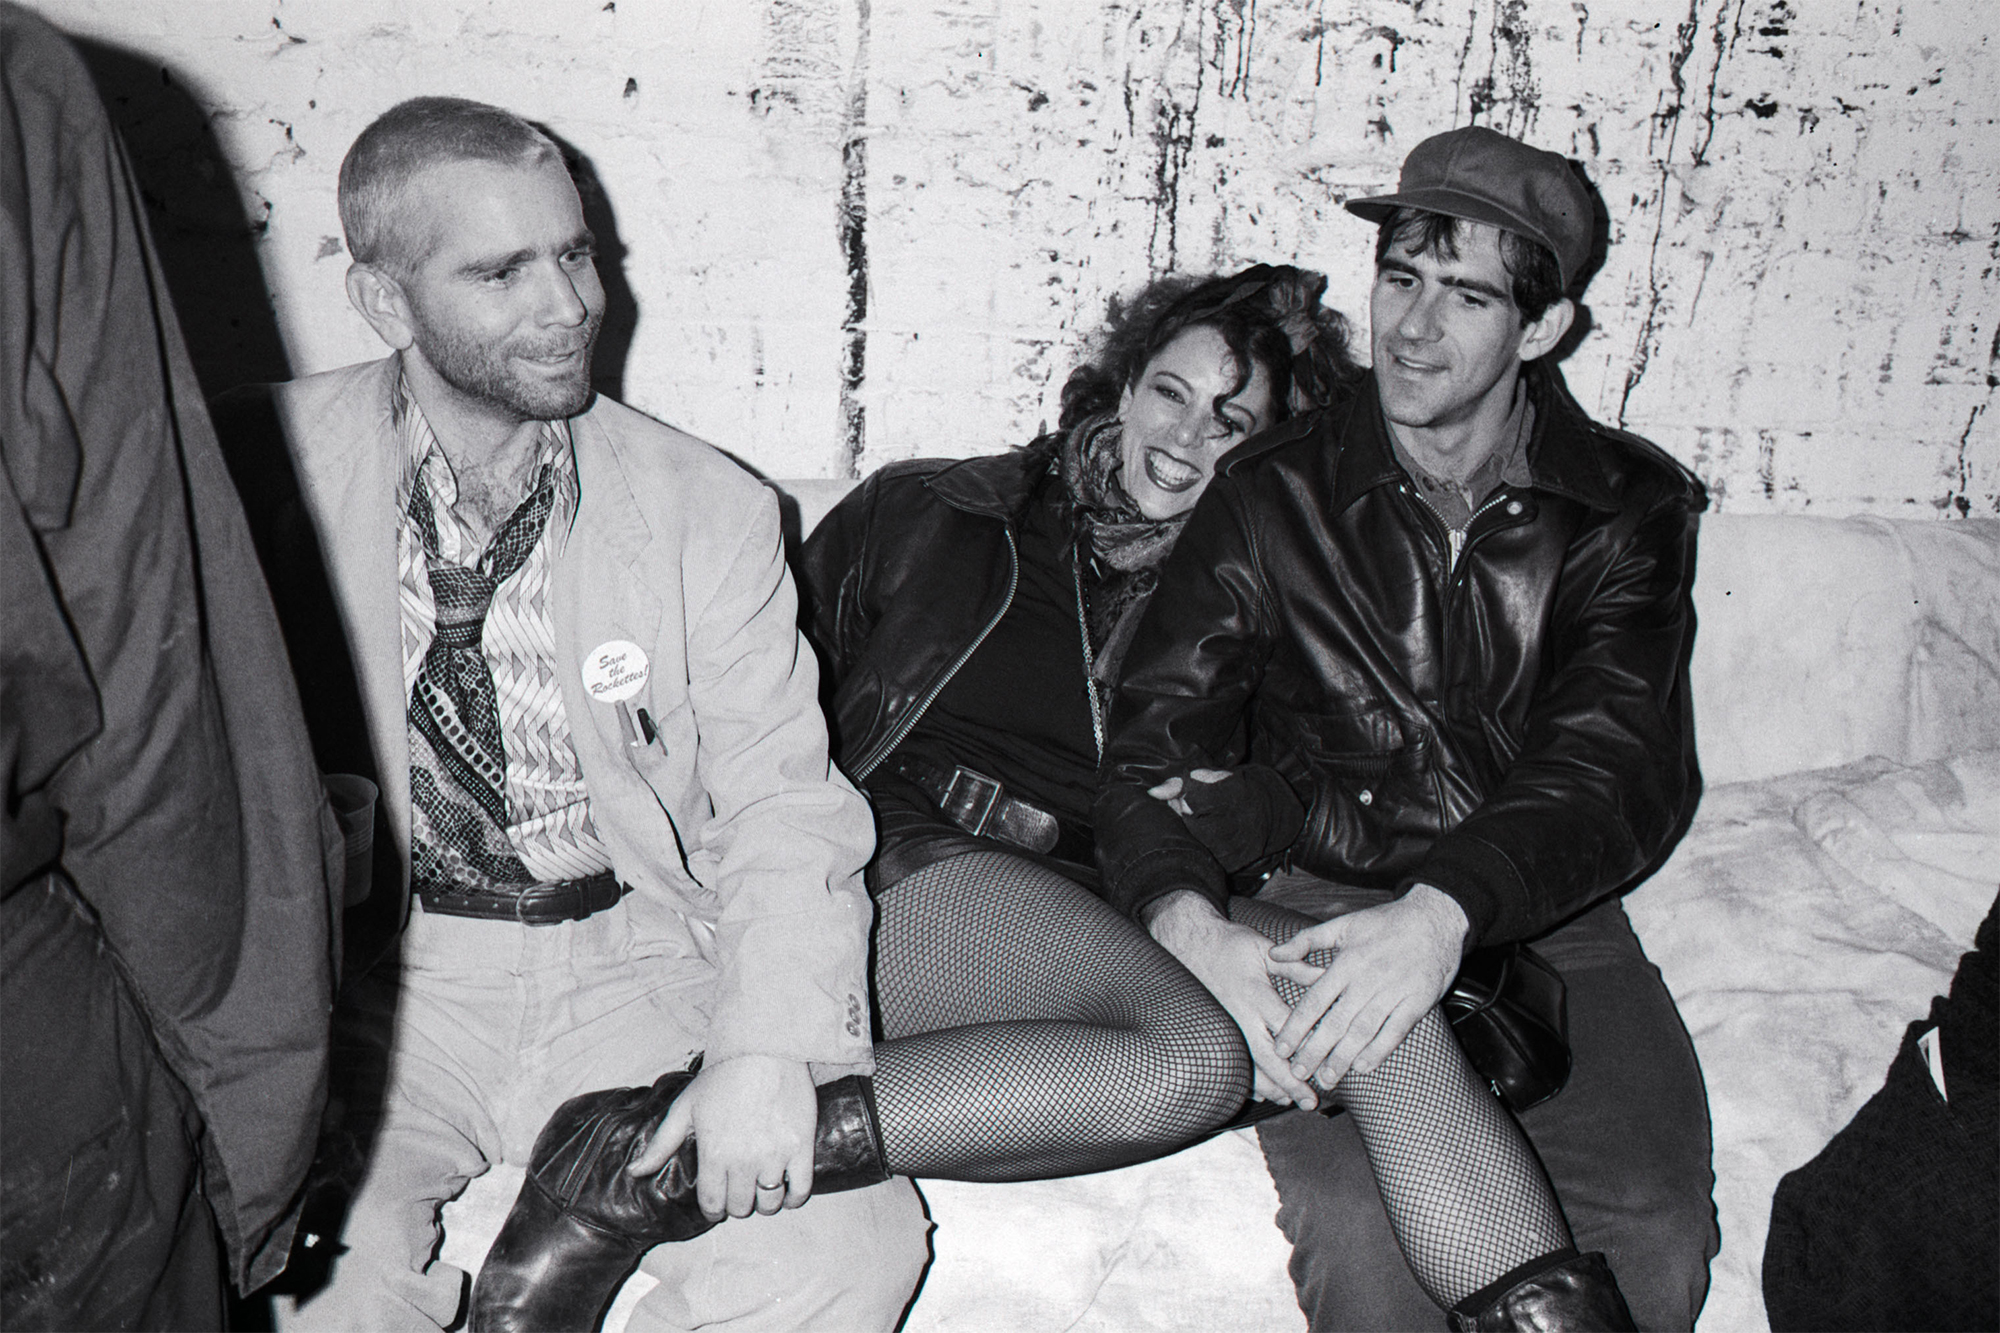 Jordan on Halloween 1985, with boyfriend/artist photographer John Schlesinger on the right and 8BC club co-owner Dennis Gattra on her other side. Photo by Tom Warren.